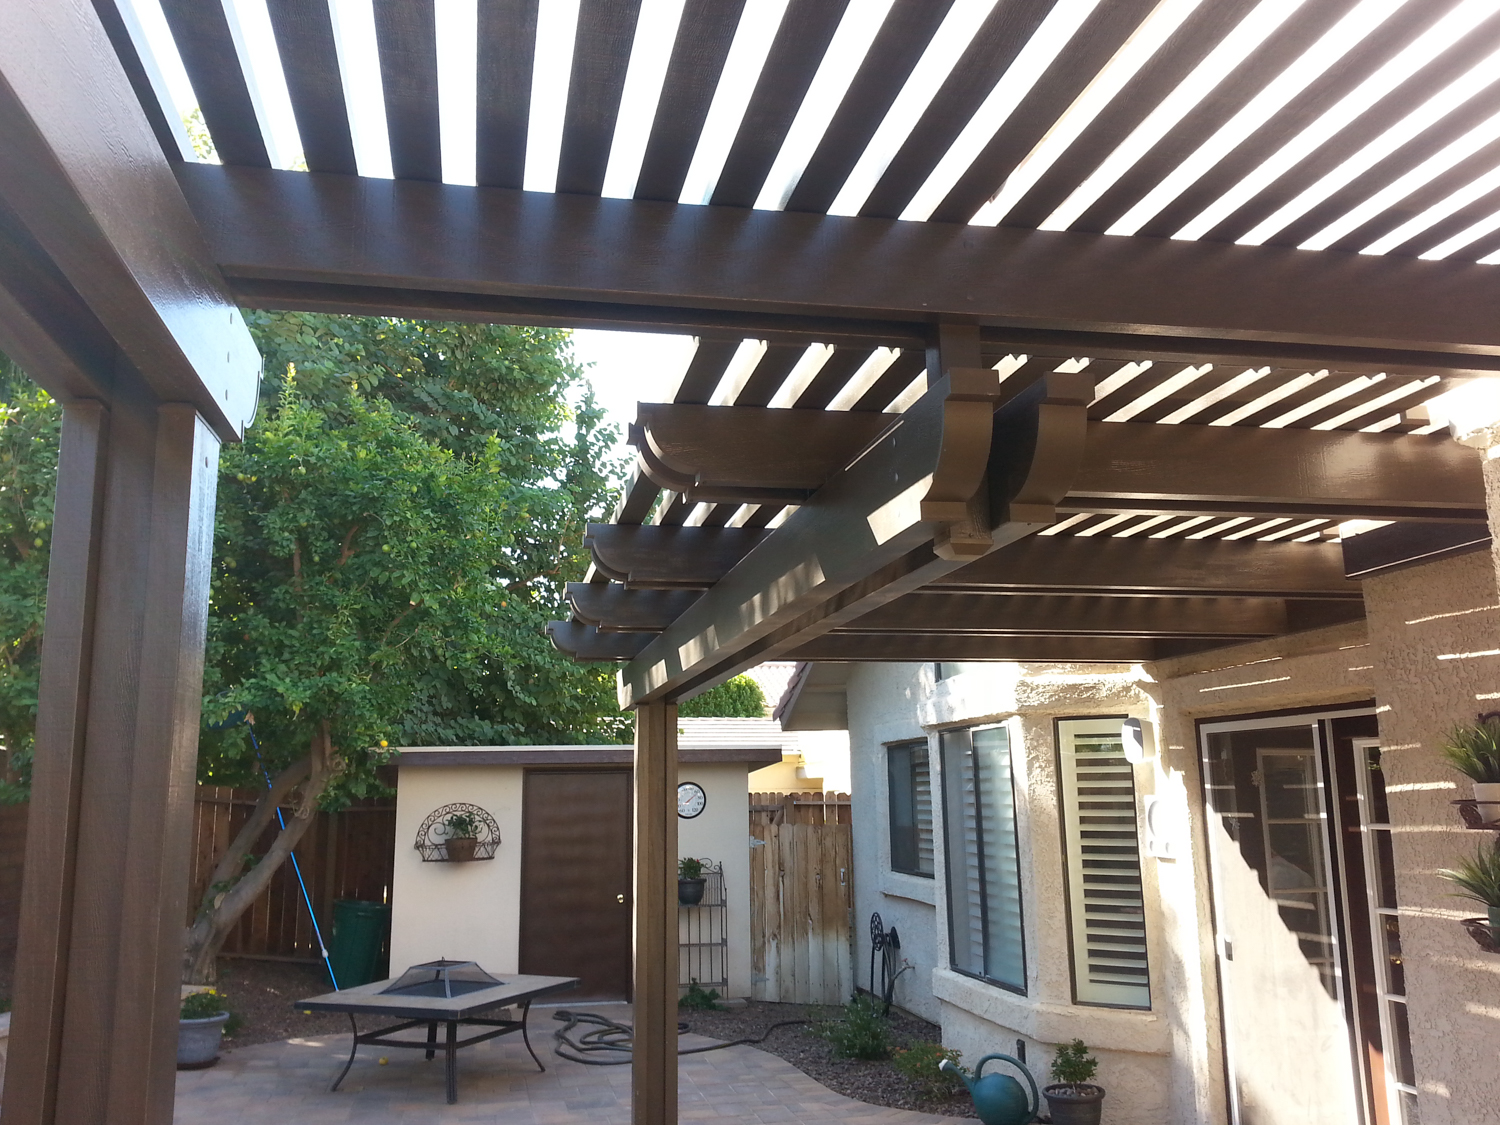 Lattice Patio Cover with Round Fiberglass and Columns, 92234